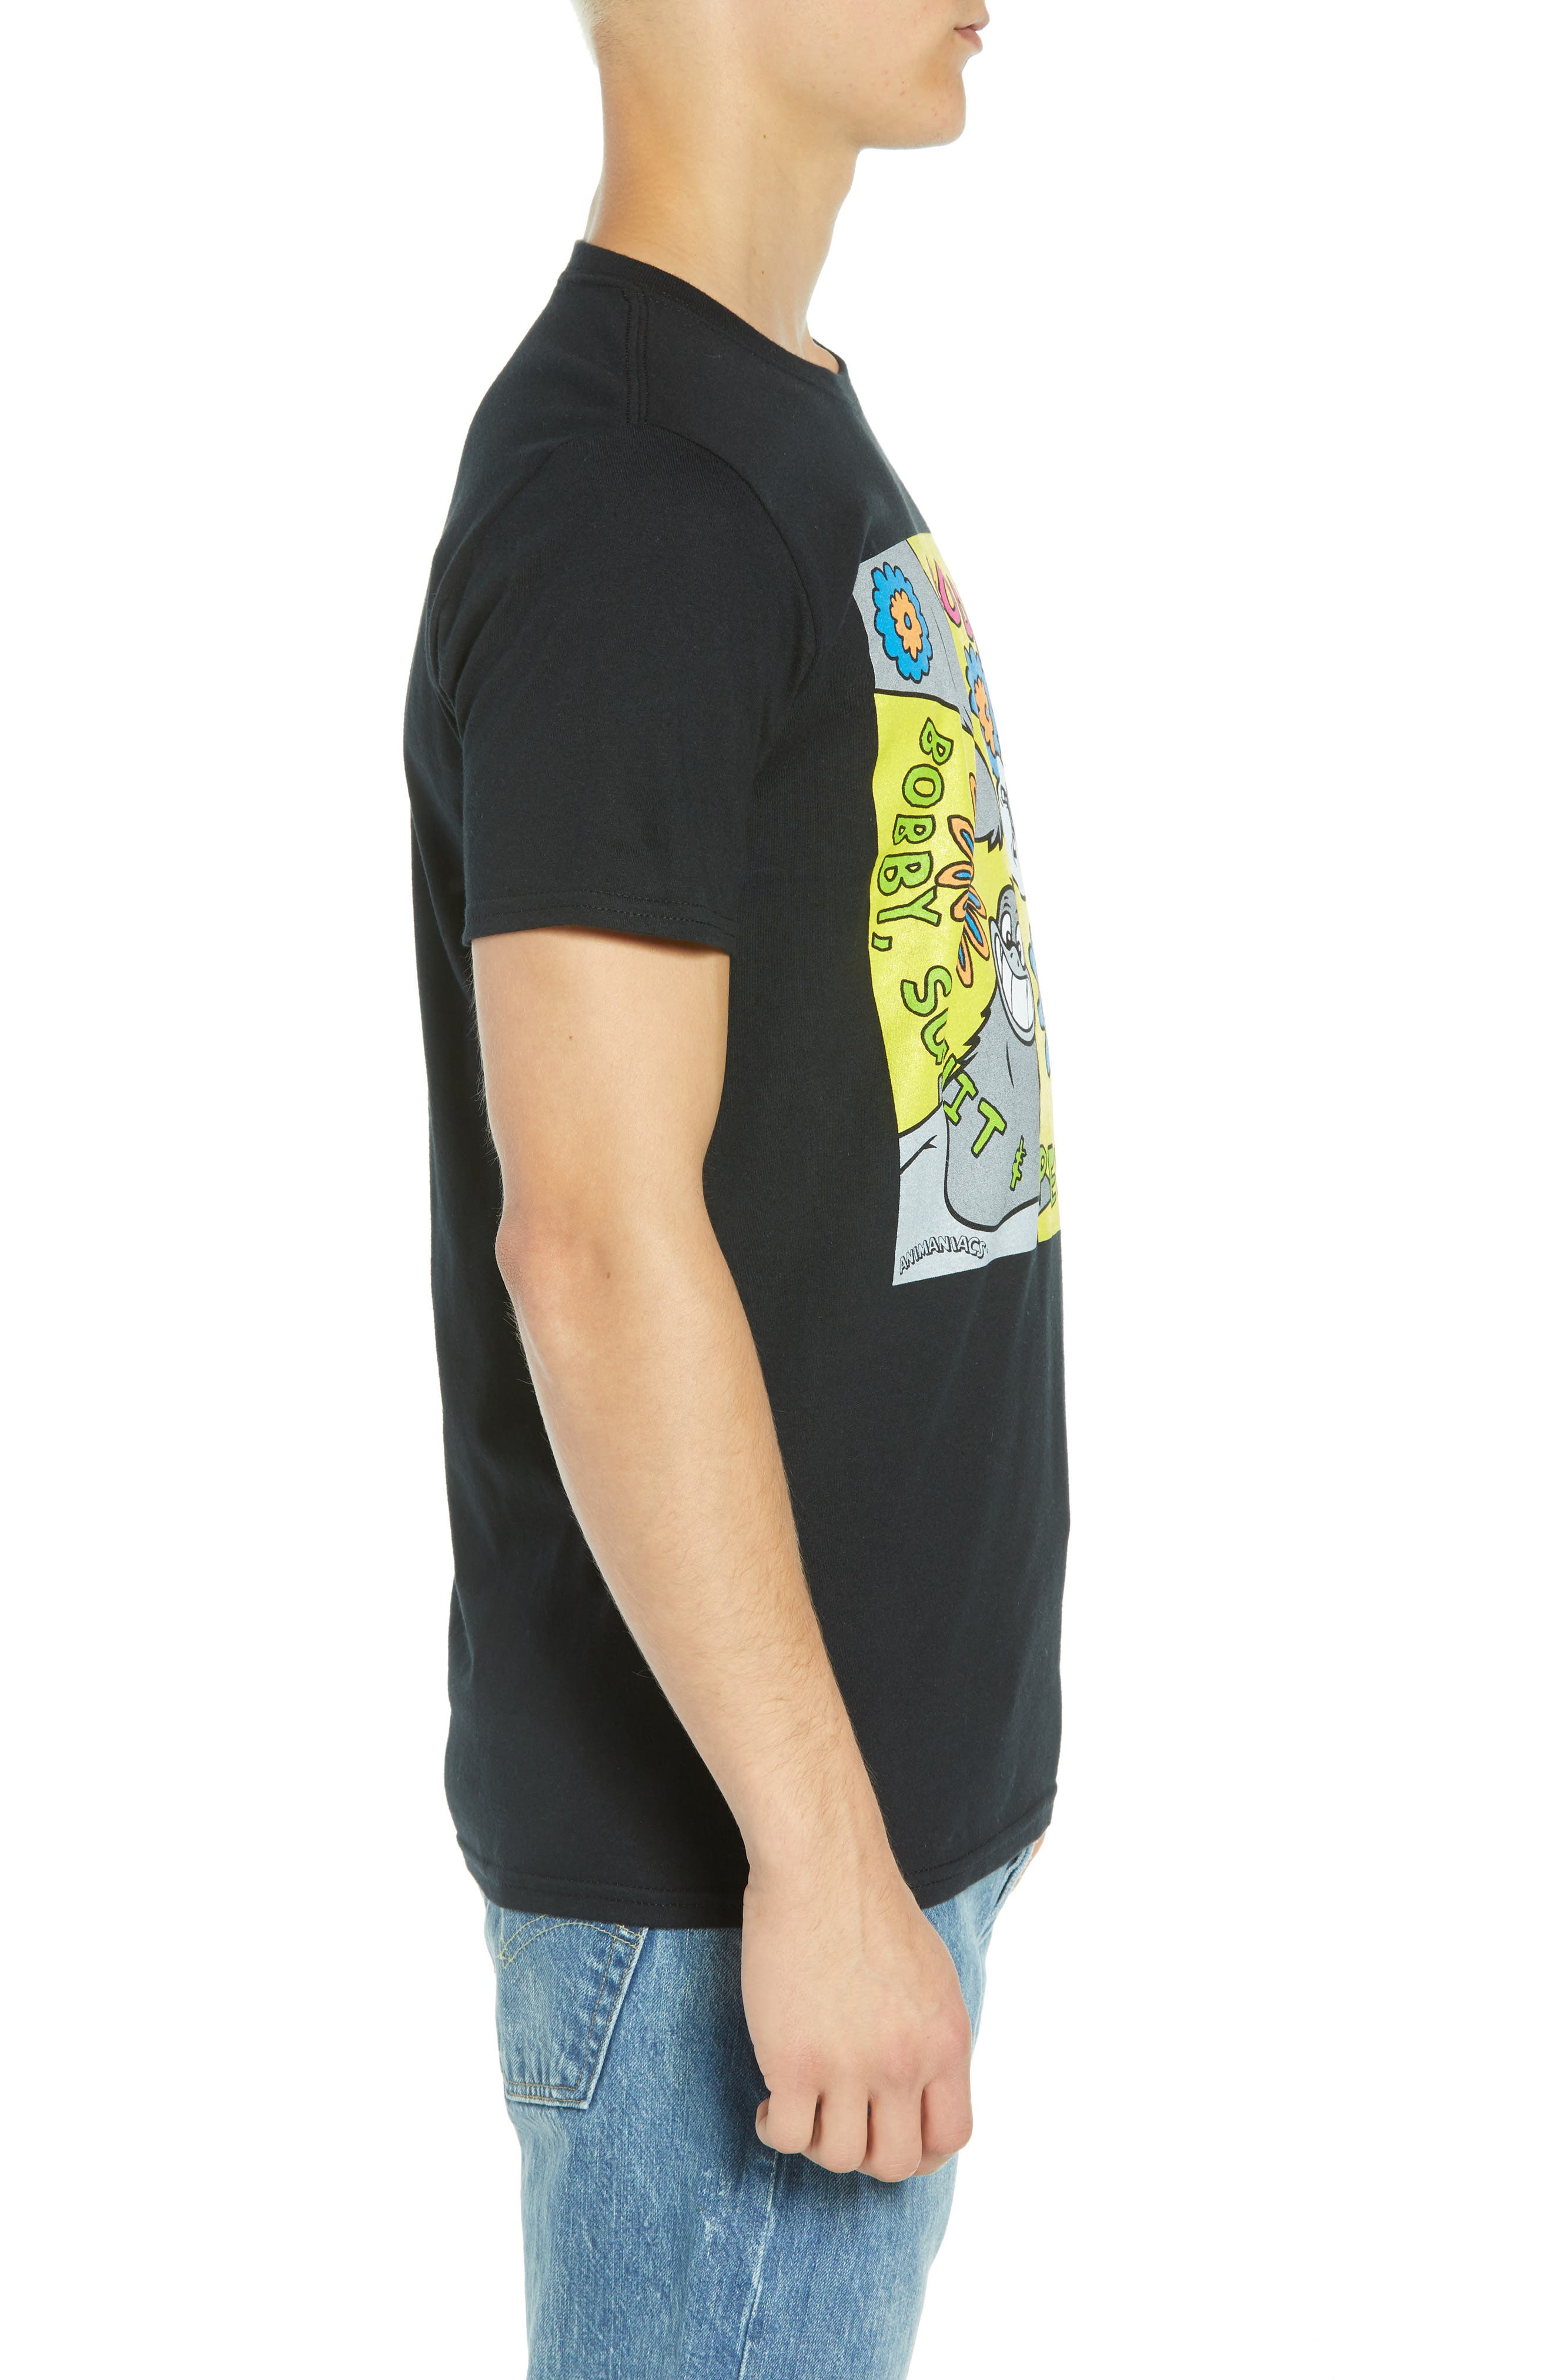 Goodfeathers T-Shirt,                             Alternate thumbnail 3, color,                             BLACK GOODFEATHER